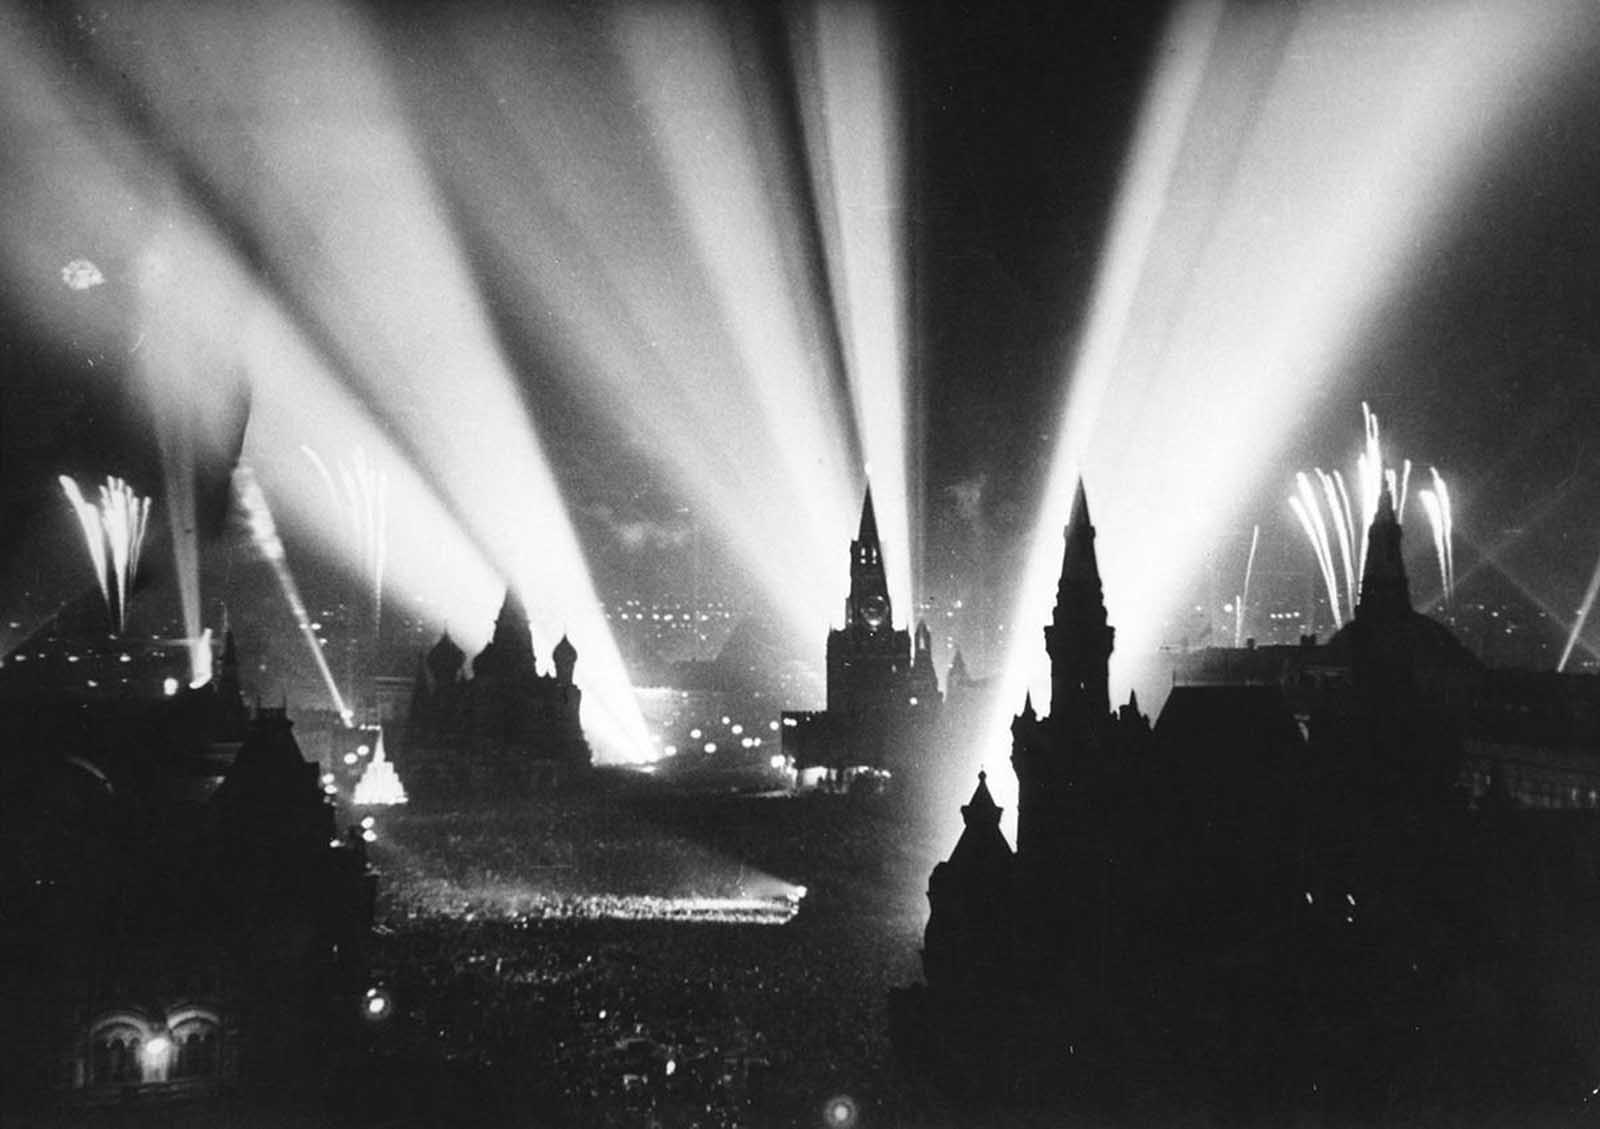 Celebration of Victory in Moscow's Red Square, in the Soviet Union. Fireworks began on May 9, 1945, followed by bursts of gunfire and a sky illuminated by searchlights.